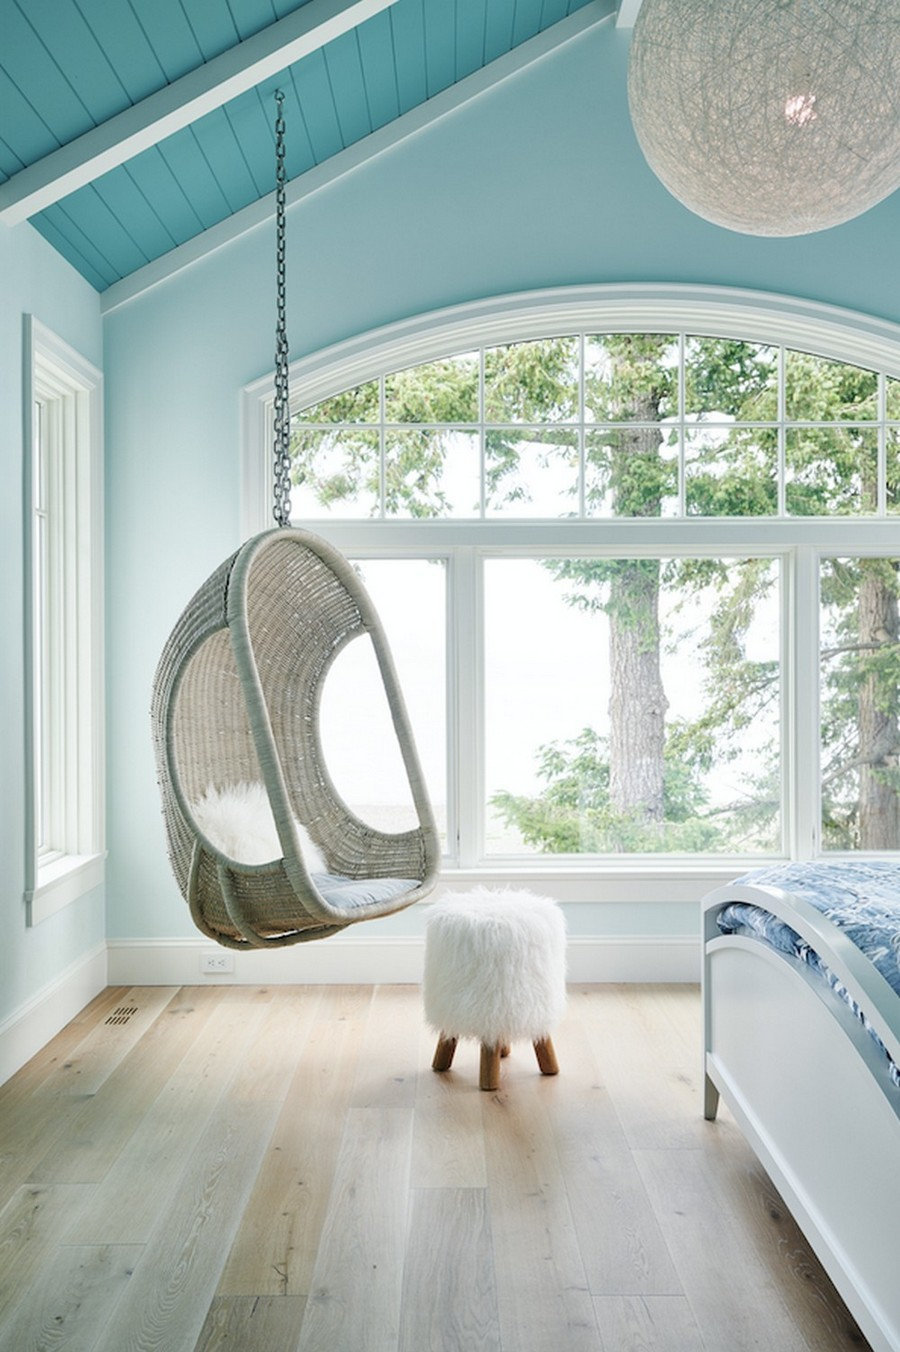 interior design Get Inspired By The Interior Design Of This Vancouver Getaway Get Inspired By The Interior Design Of This Vancouver Getaway 6